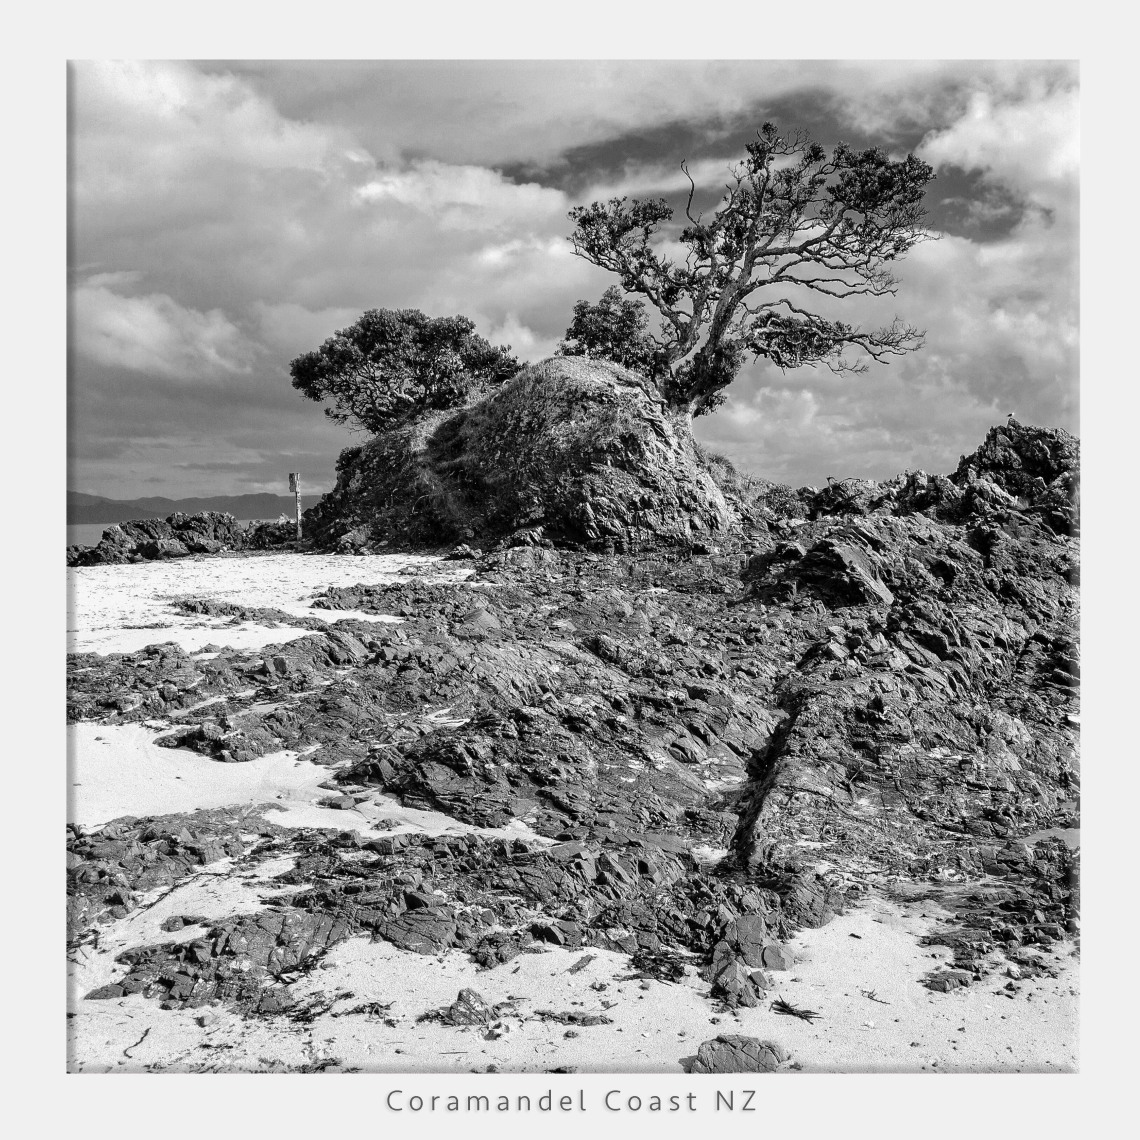 iPhone DNG capture wind blown tree coromandel coast in new zealand converted to monochrome